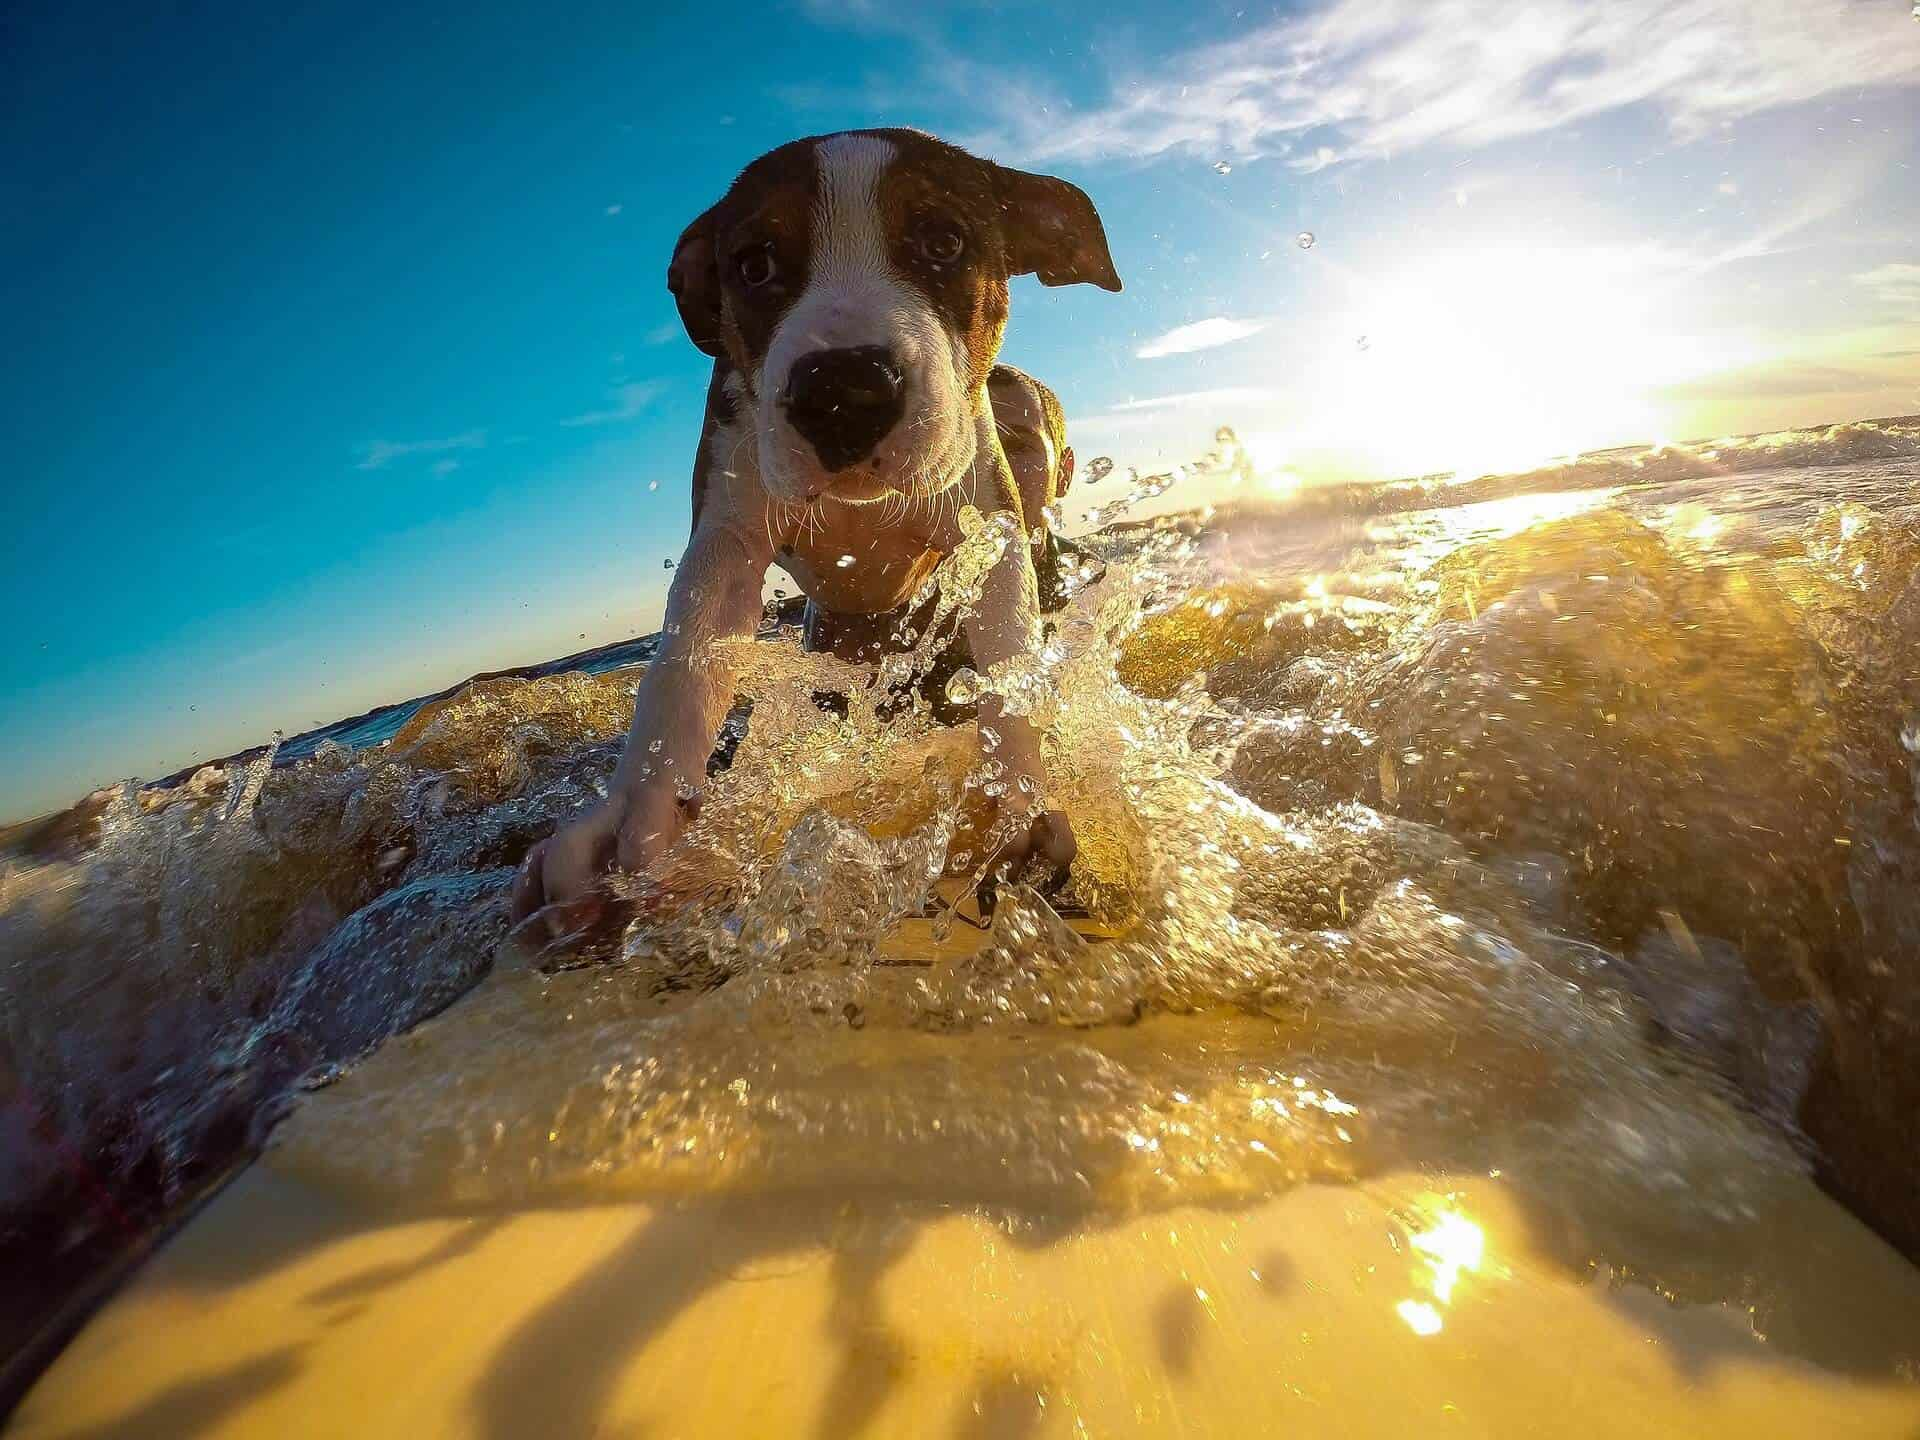 Surfing puppy dog